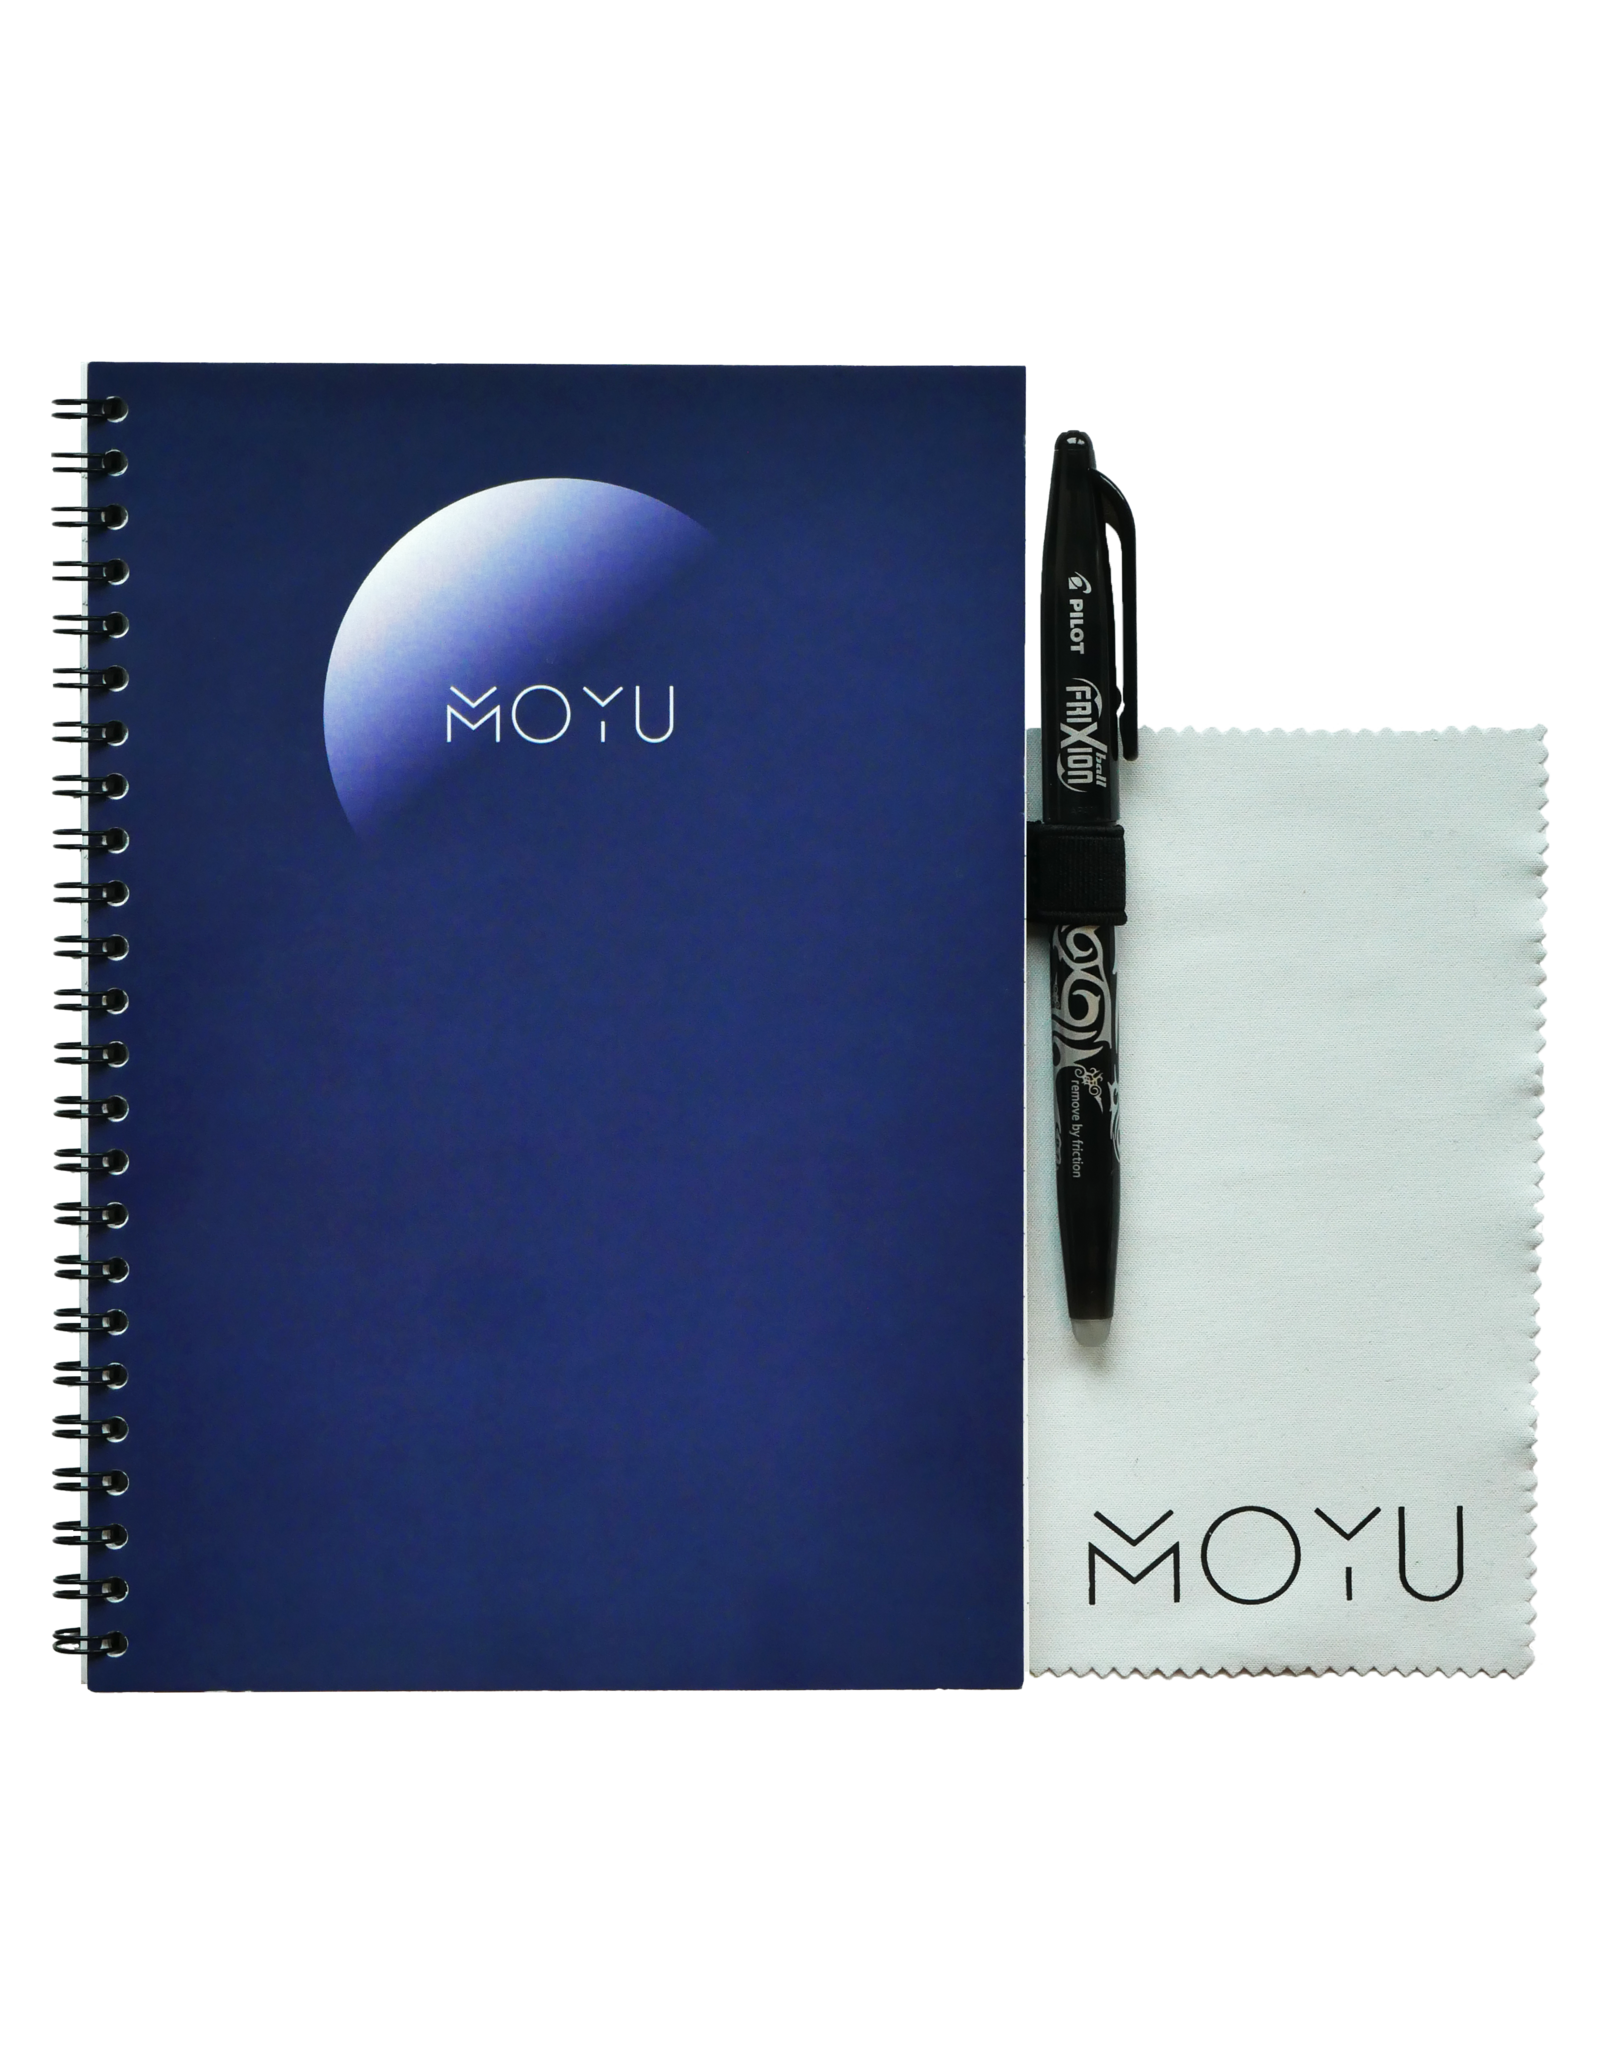 Moyu Sustainable notebook A5